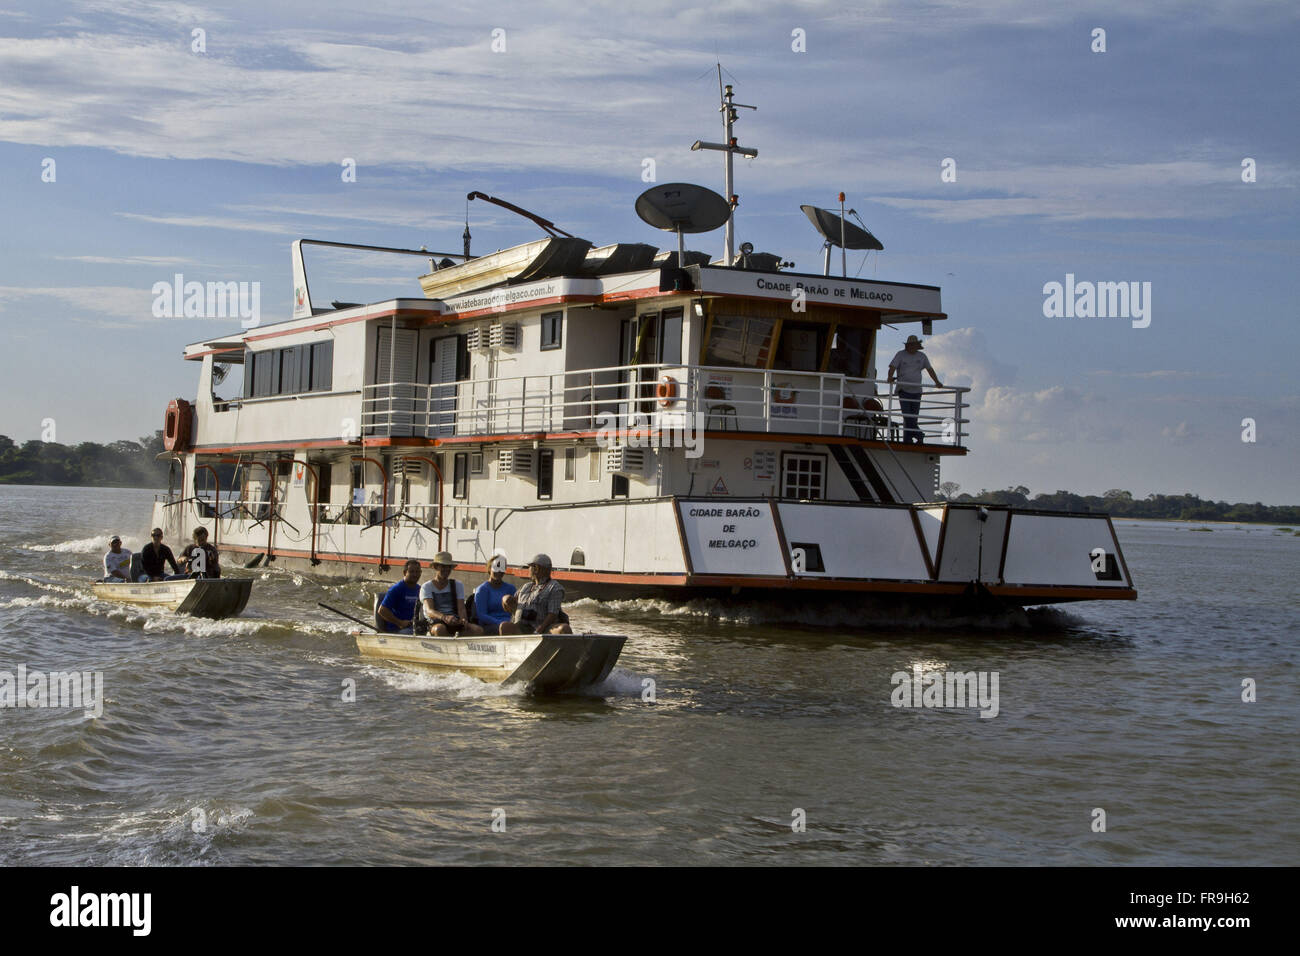 Boats and punt a touristy tour and sport fishing in the Rio Paraguay - Stock Image